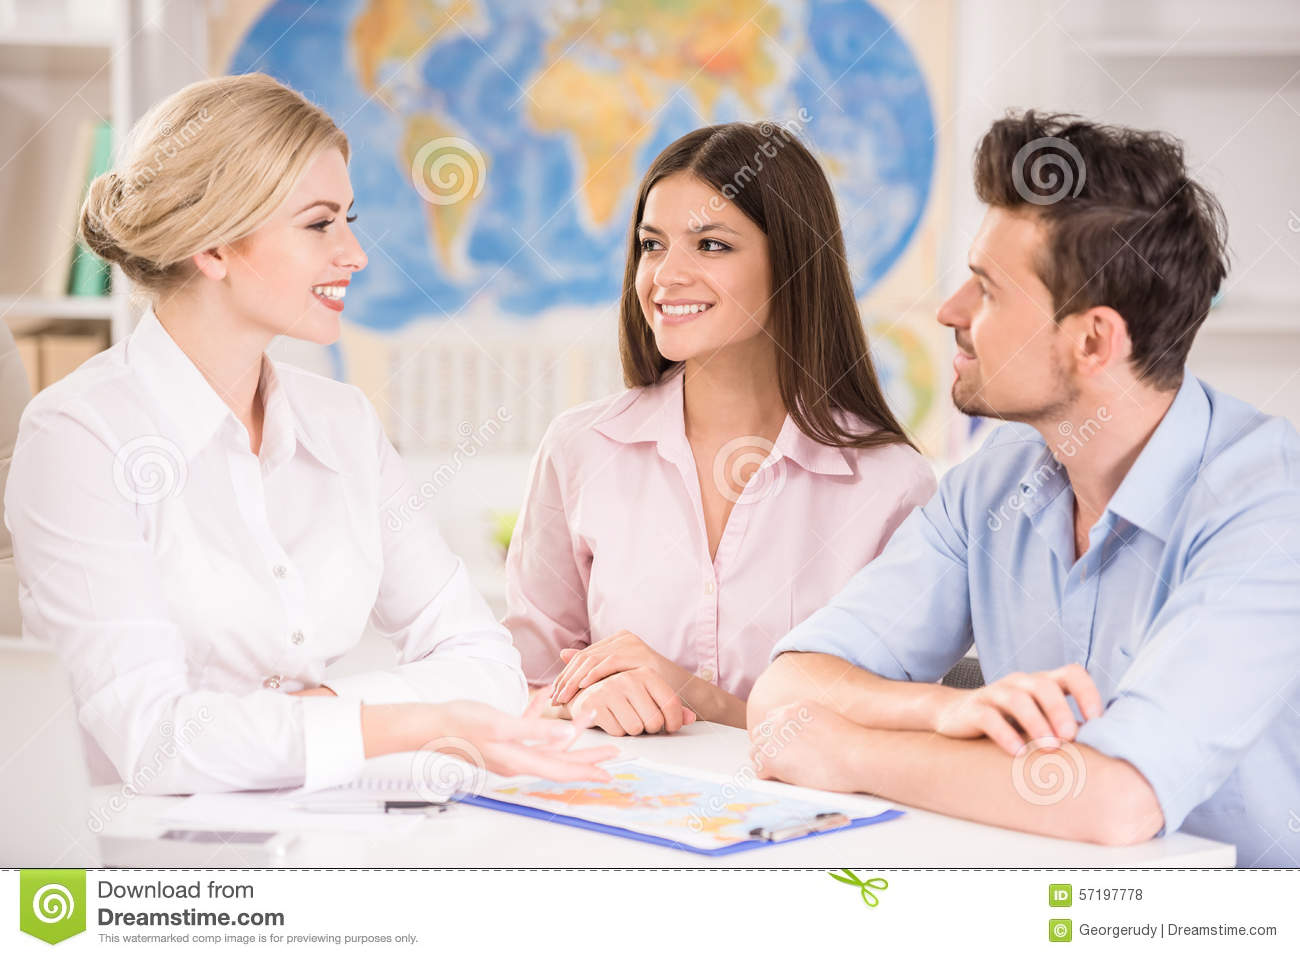 participation of women in travel agency Tourism jobs are among the most attractive available to both men and women – both in terms of salary and job satisfaction the main objective of this research is to o dominated female labour force in tourism industry remains under- dialogue, the decrease in women's labour force participation after 1990 seemed.